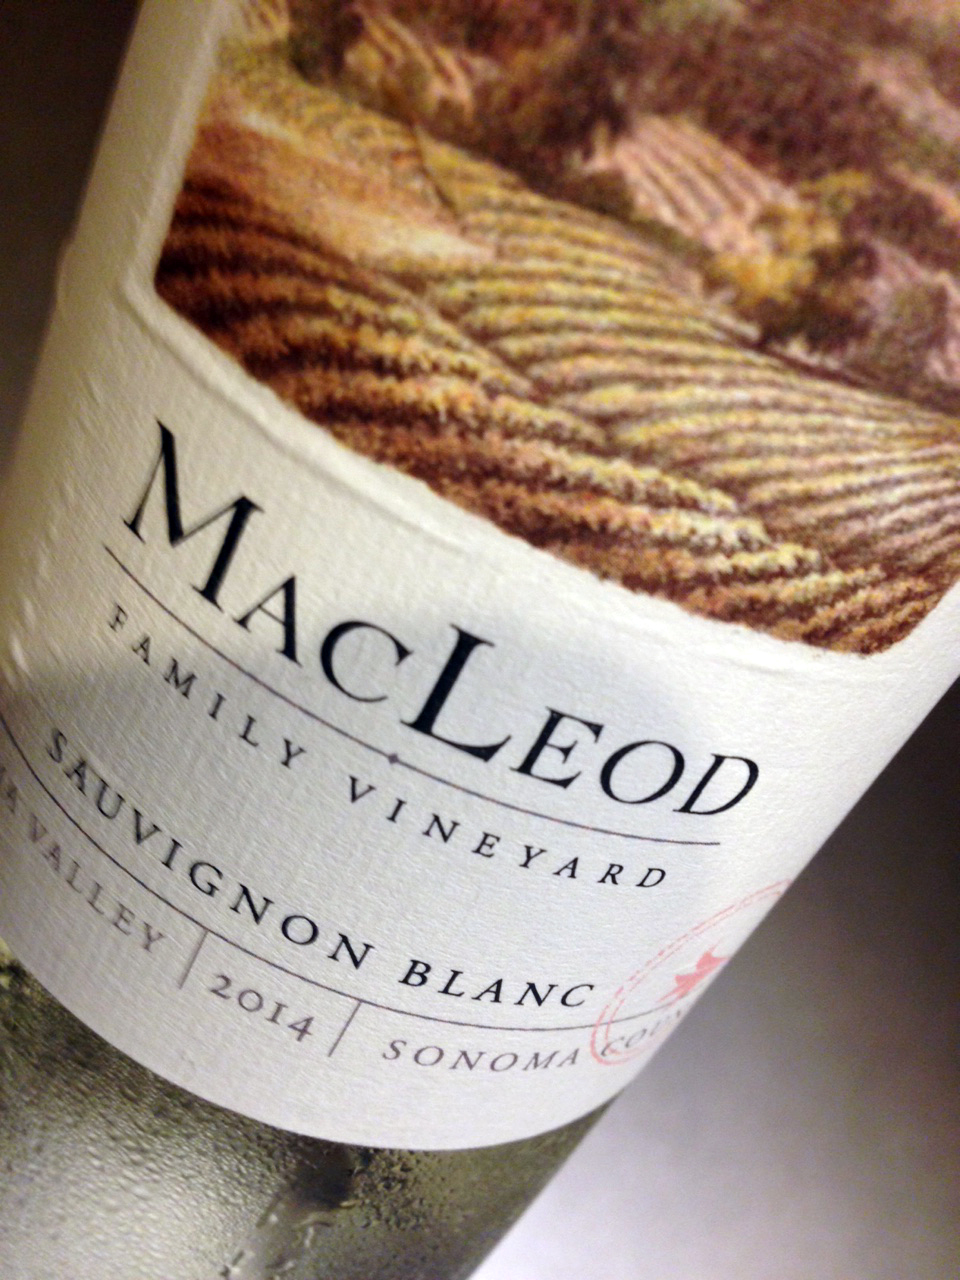 This year's drought has diminished the 2015 MacLeod harvest by 30-40%. Thankfully, we have a supply of the 2014 and it drinks beautifully.